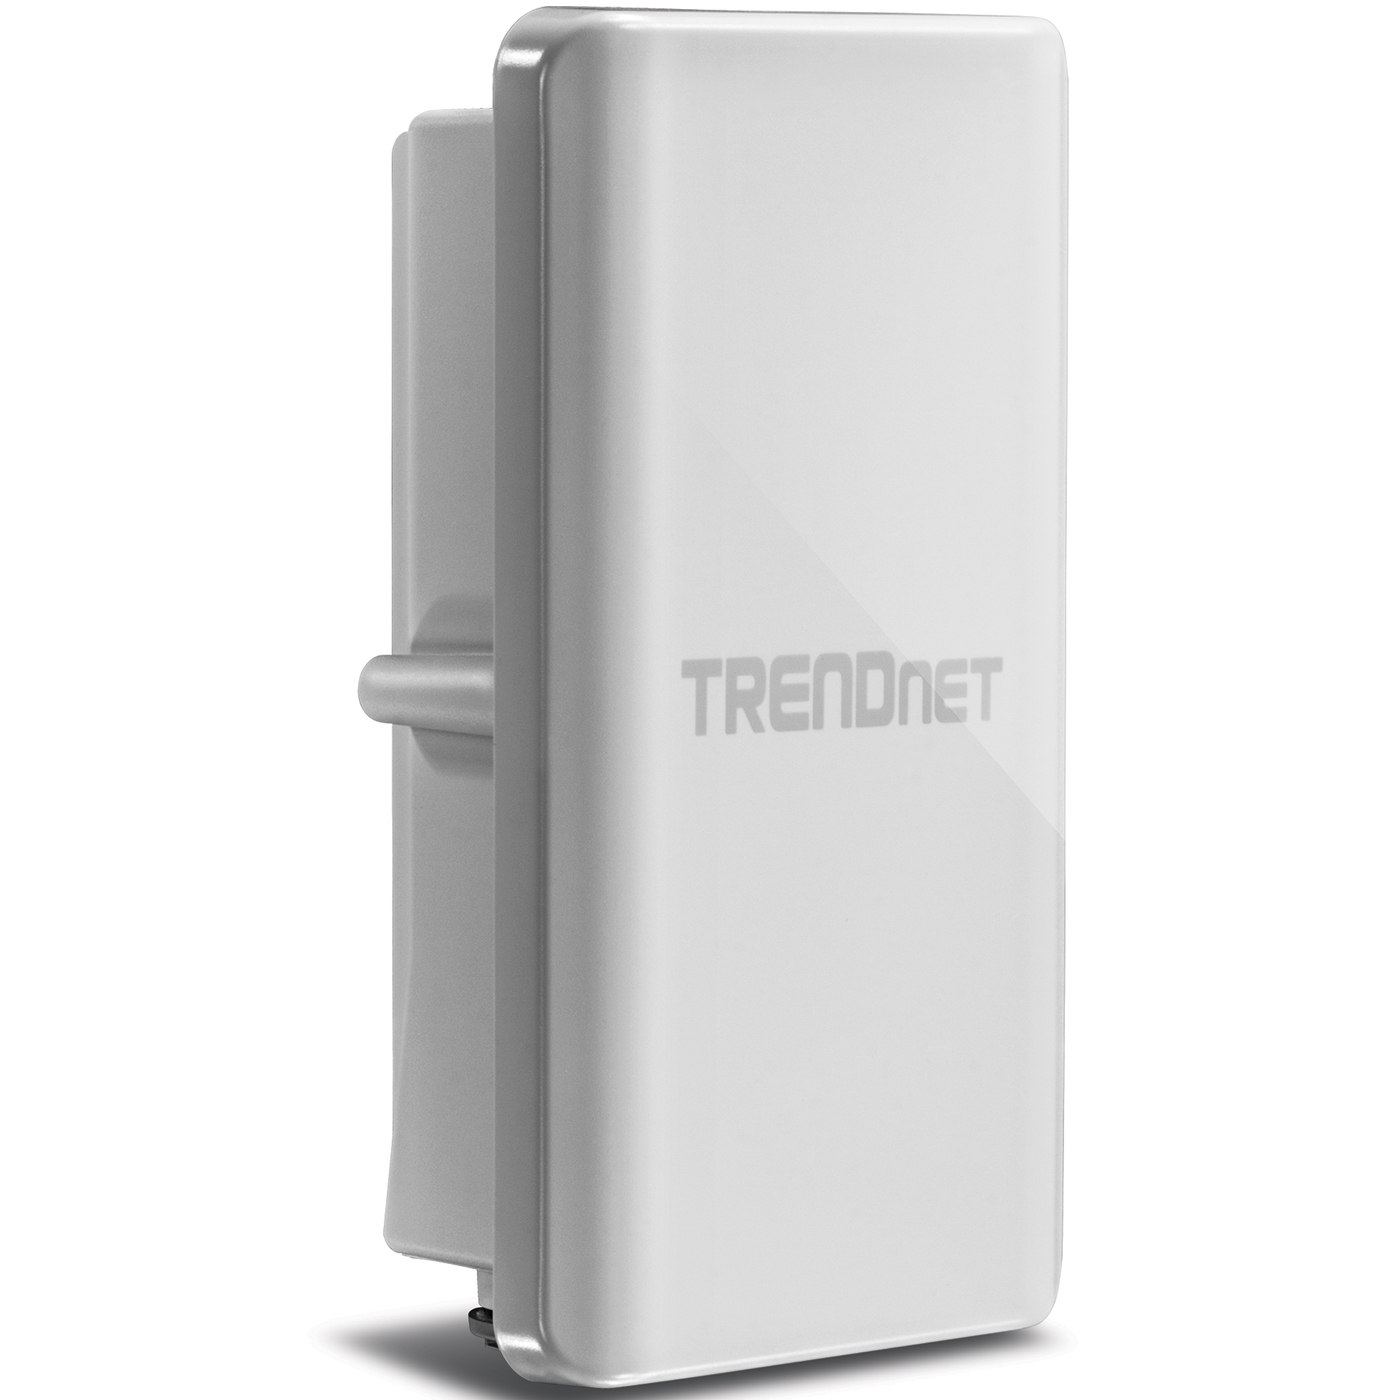 Trendnet tew 738apbo point d 39 acc s wifi trendnet sur ldlc for Point d acces wifi exterieur